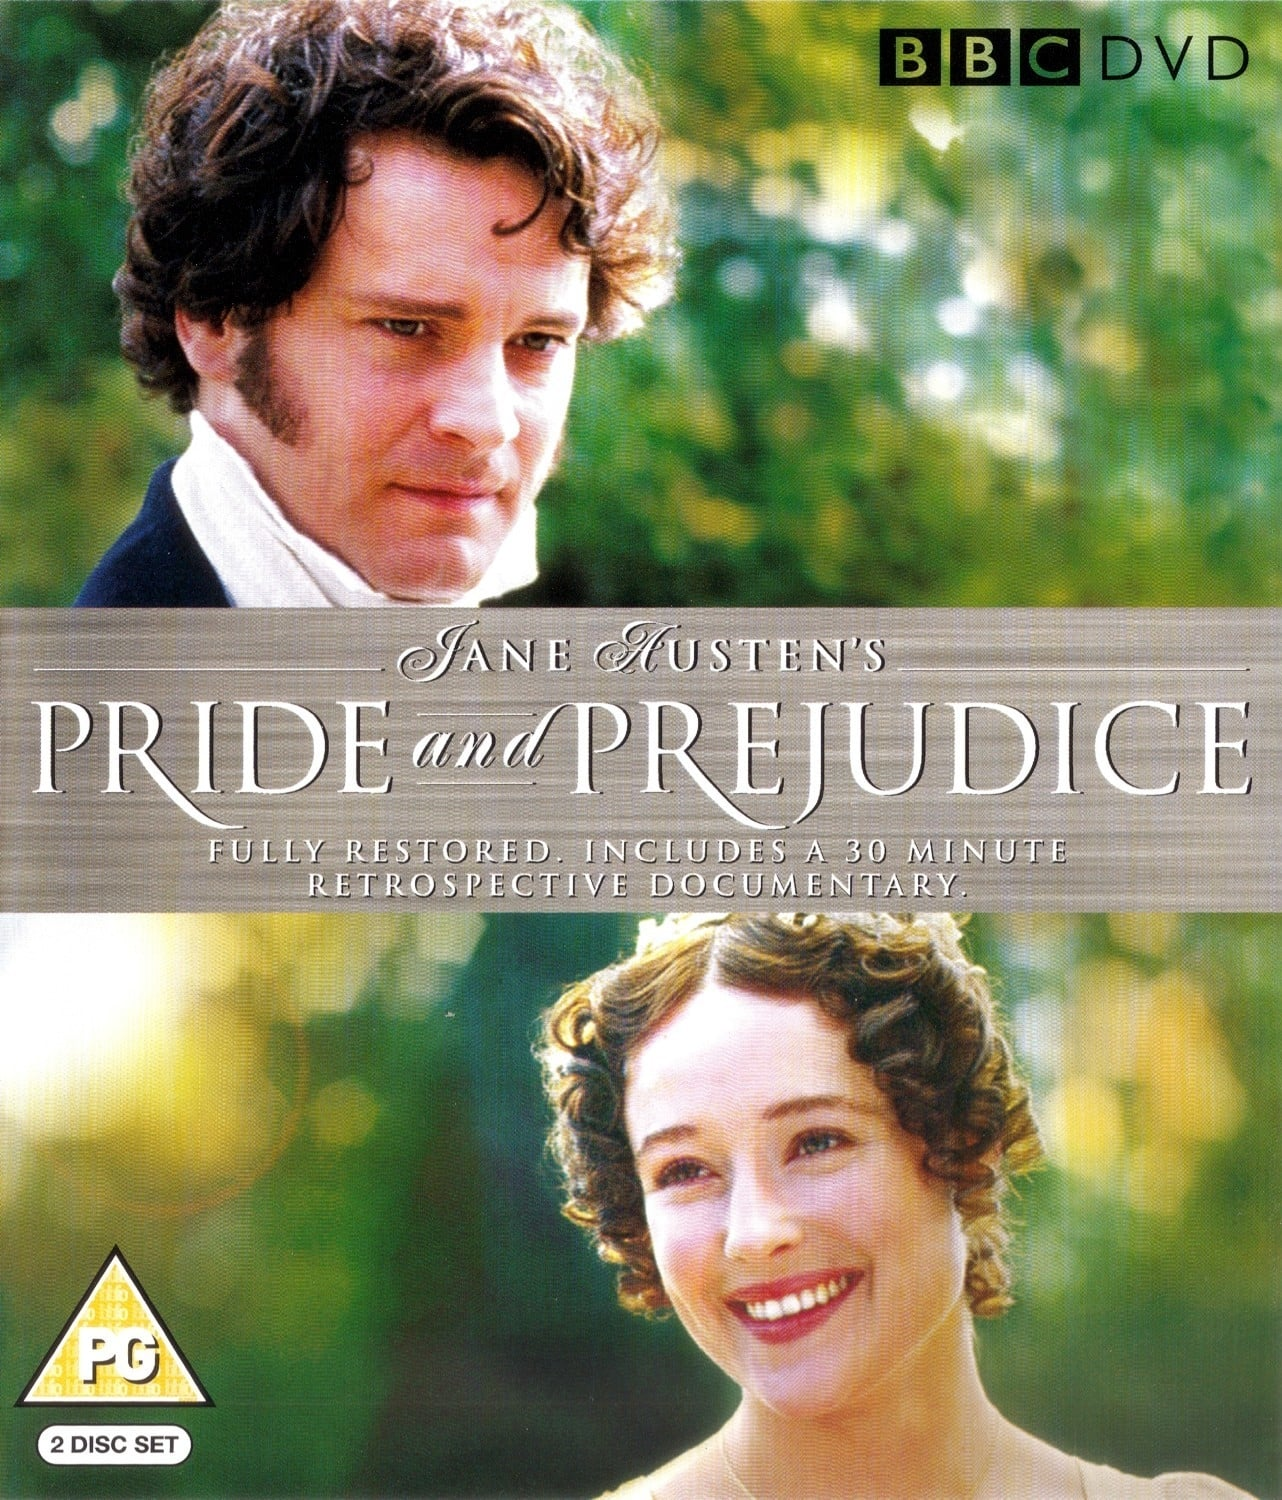 pride and prejudice book vs movie essay A lot of parents want their kids to read the book then watch the movie letters to the editor pride & prejudice trends book vs movie book vs movie.